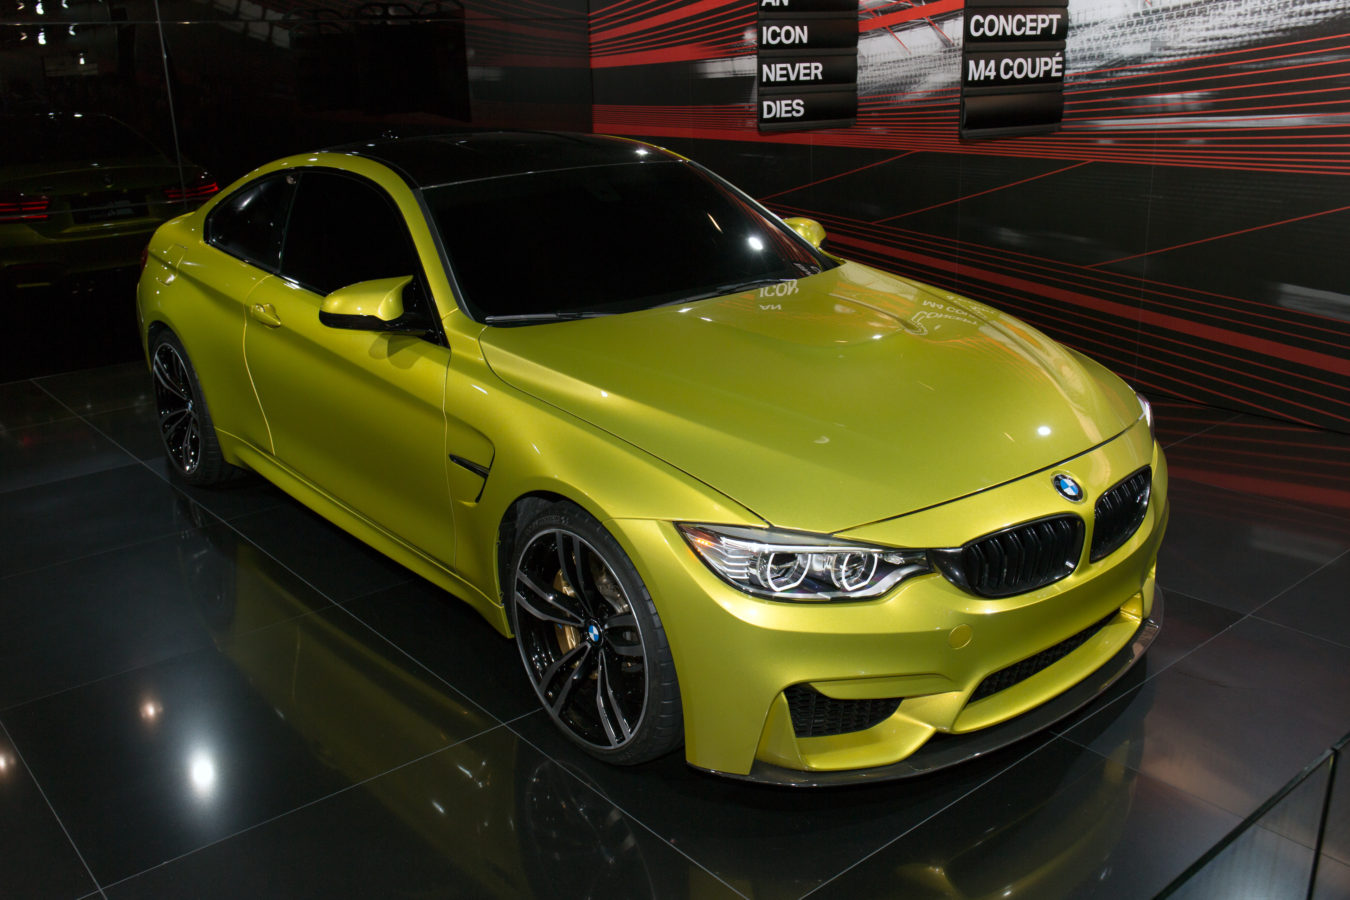 BMW_Concept_M4_Coupe_front-right_2013_Tokyo_Motor_Show